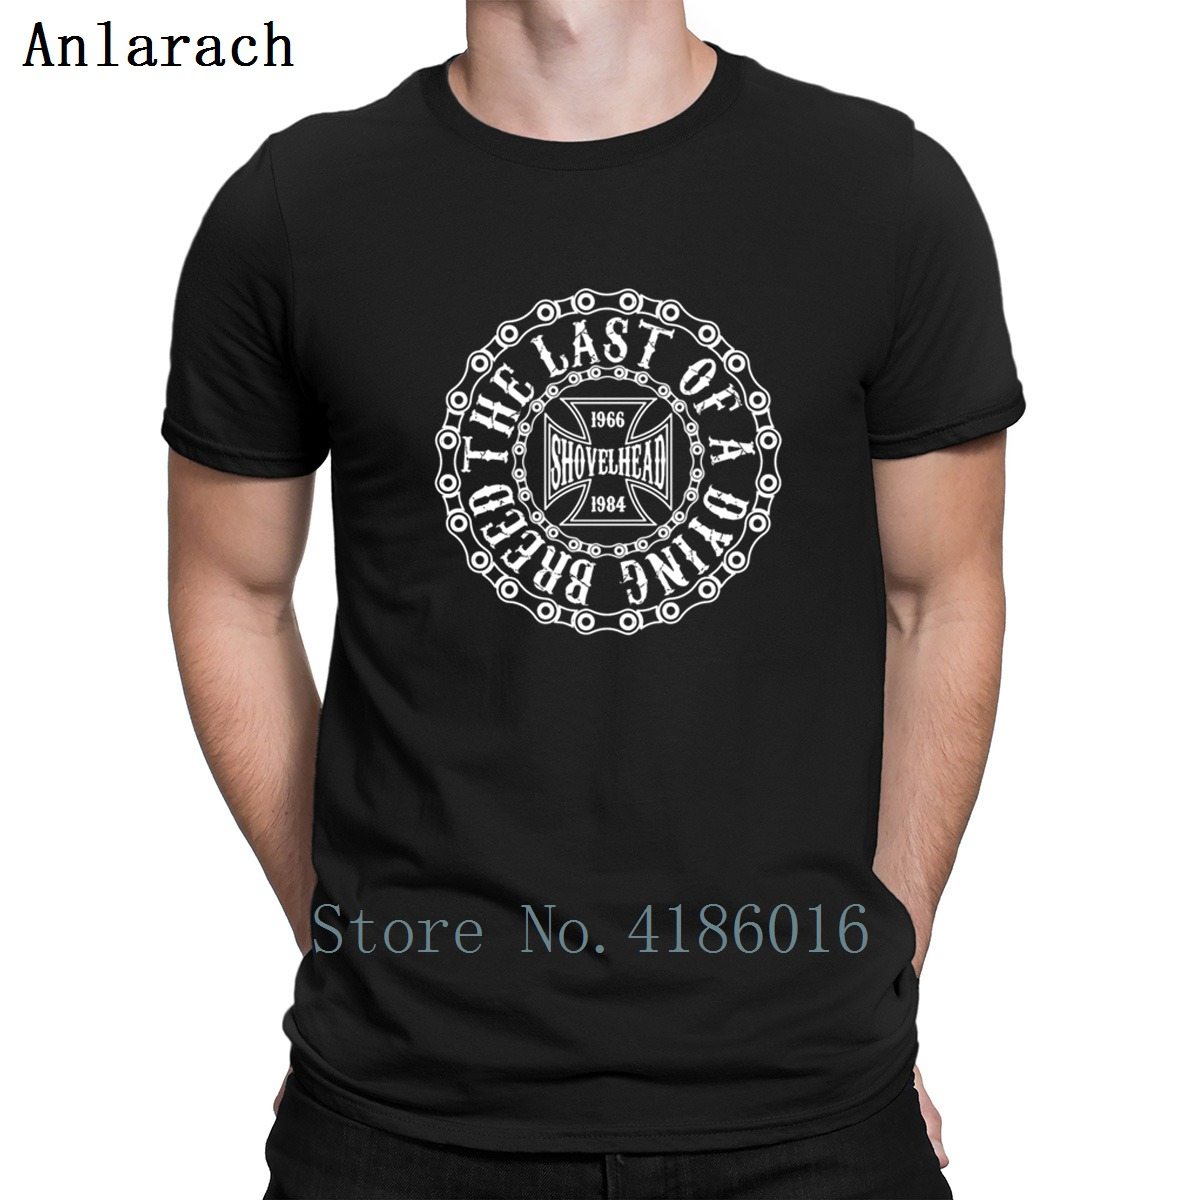 Shovelhead The Last Dying Breed T-Shirt Novelty Hiphop Tops Designs Tshirt For Men Comfortable Cotton S-3xl Graphic